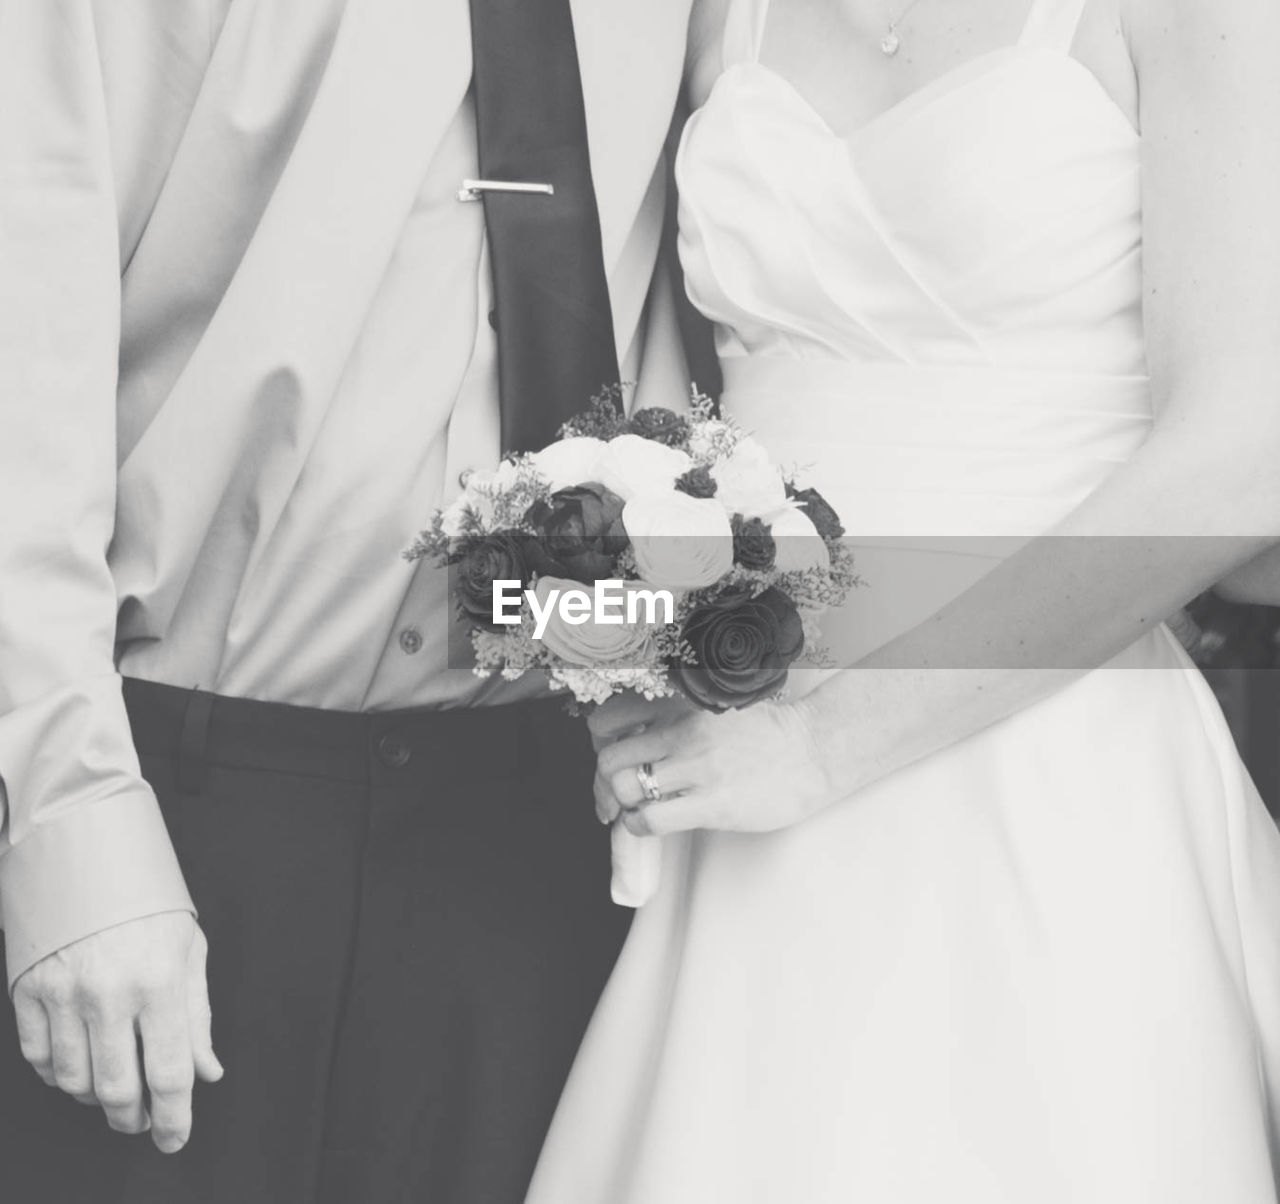 midsection, holding, real people, celebration, wedding, life events, adult, bride, women, standing, newlywed, front view, religion, flower, event, ceremony, bridegroom, people, married, two people, bouquet, hand, flower arrangement, wedding ceremony, positive emotion, couple - relationship